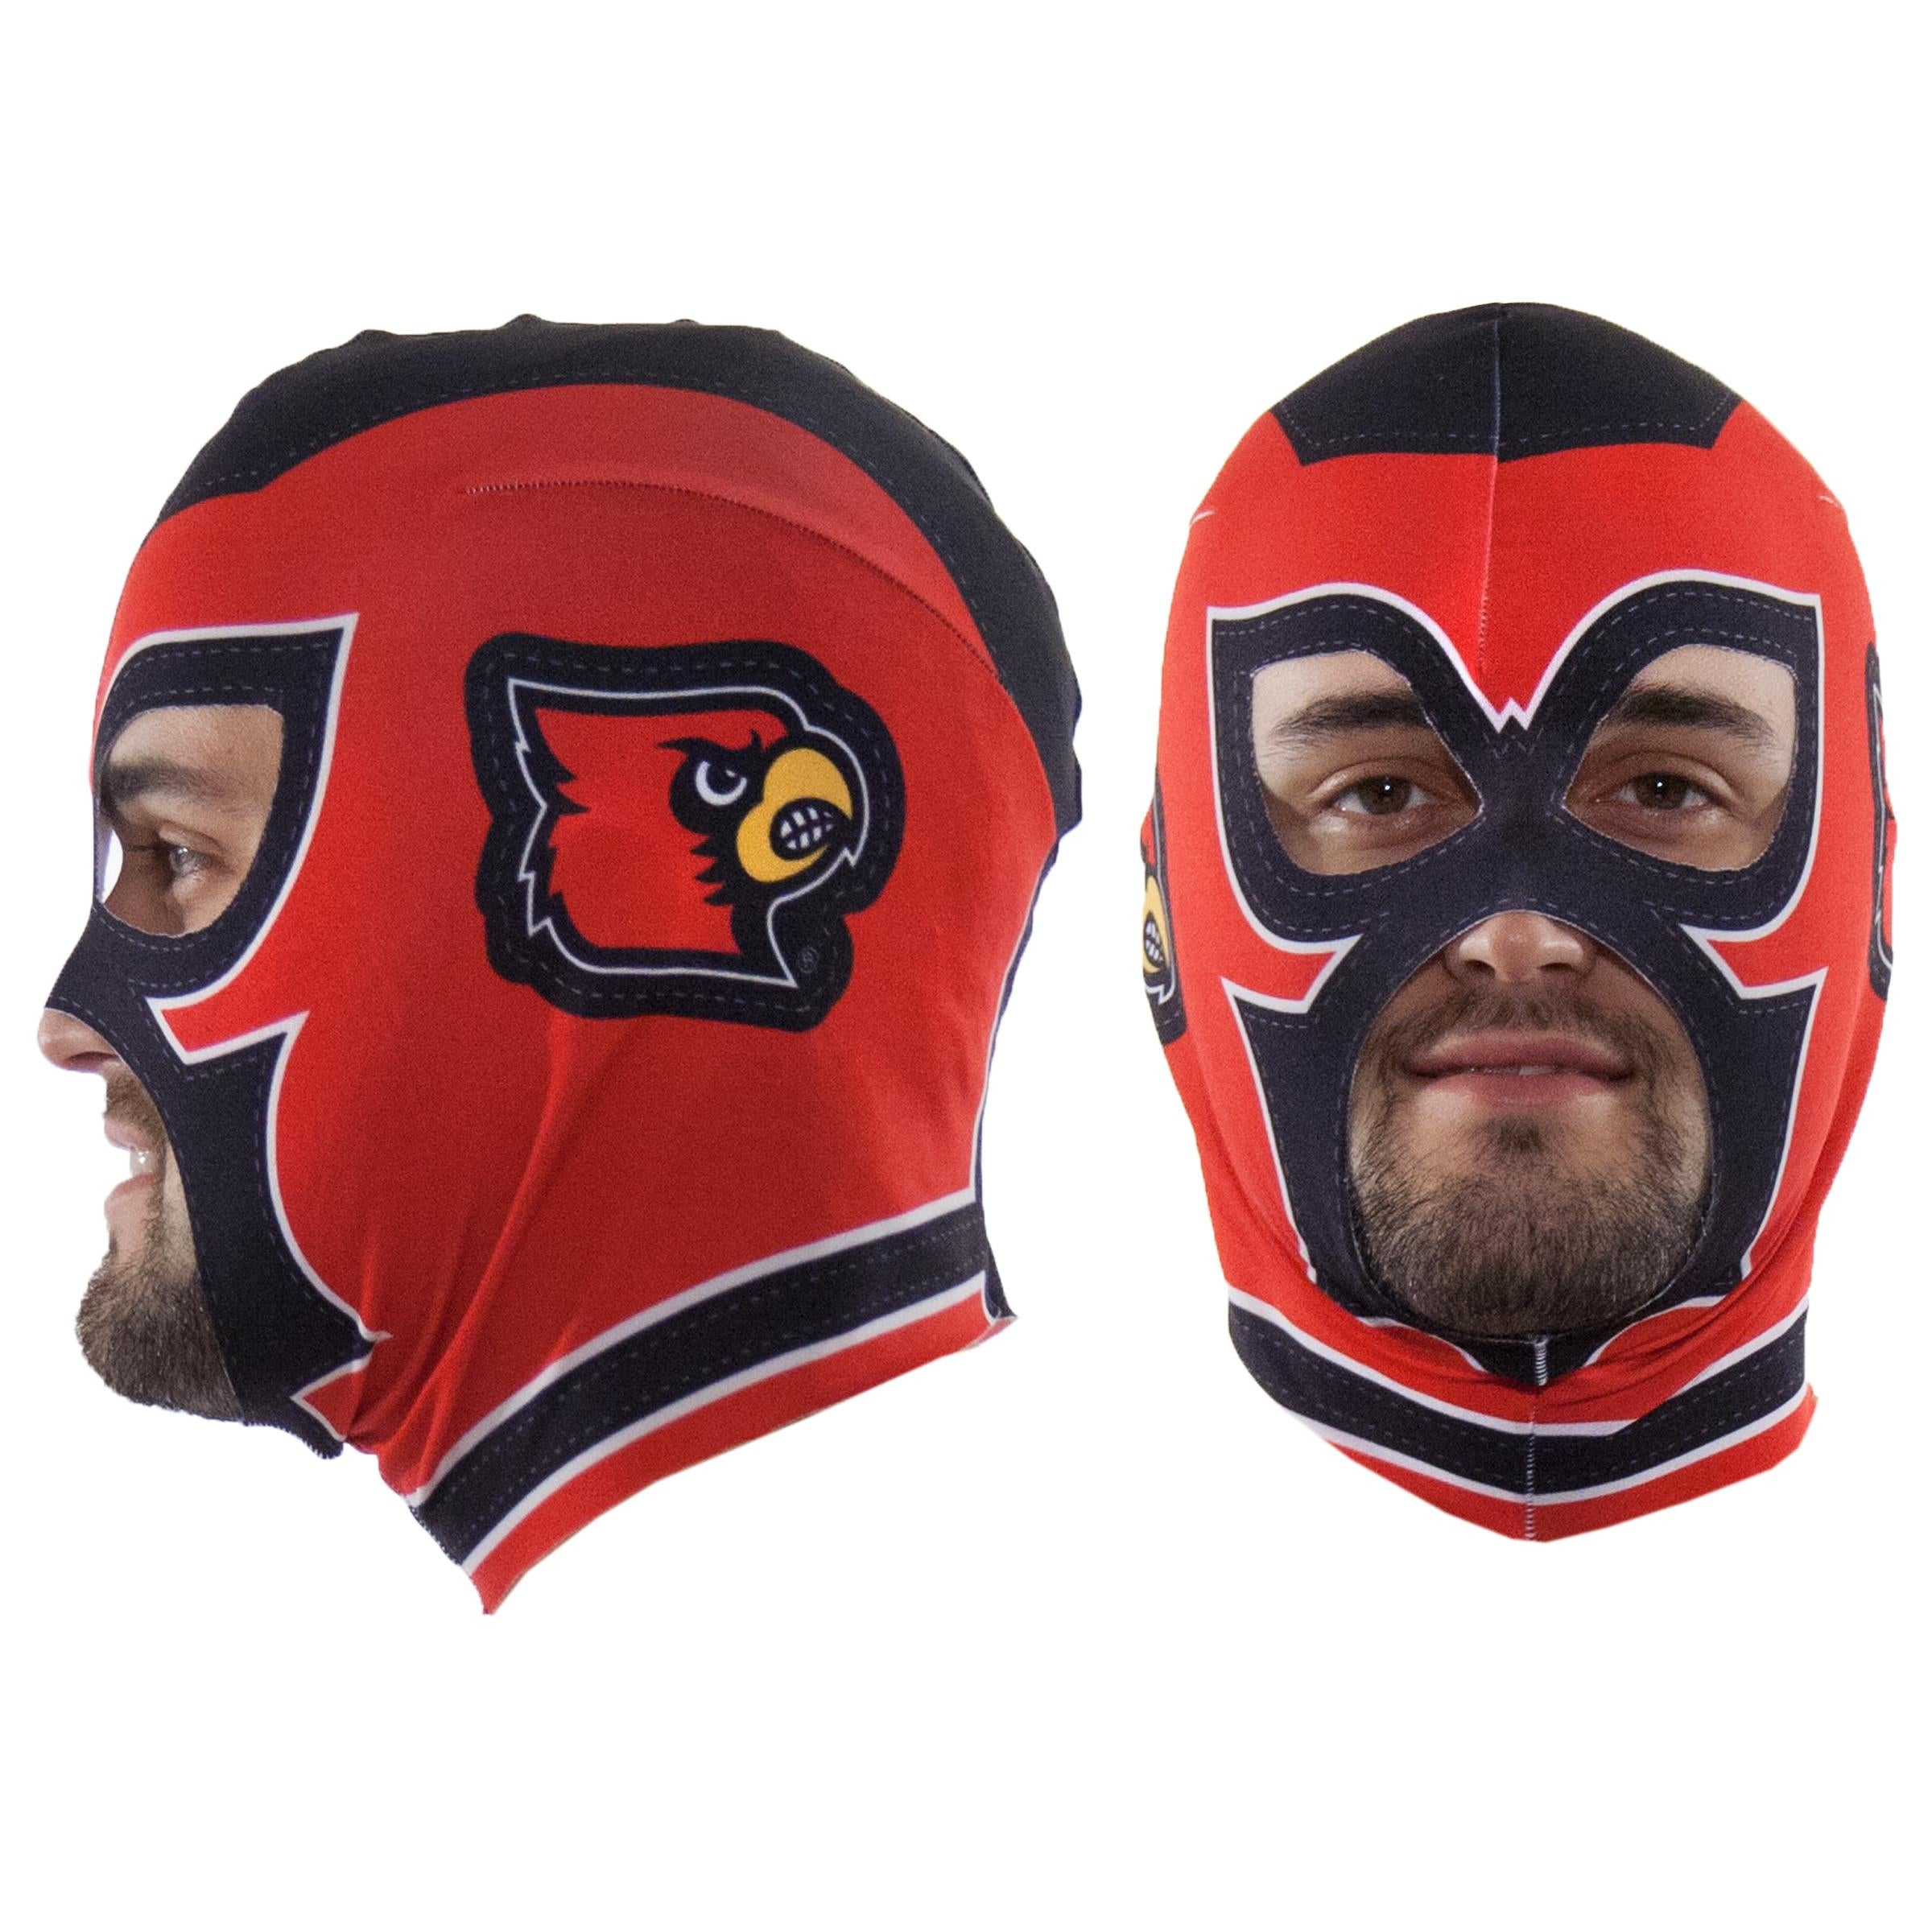 Louisville Cardinals Fan Mask